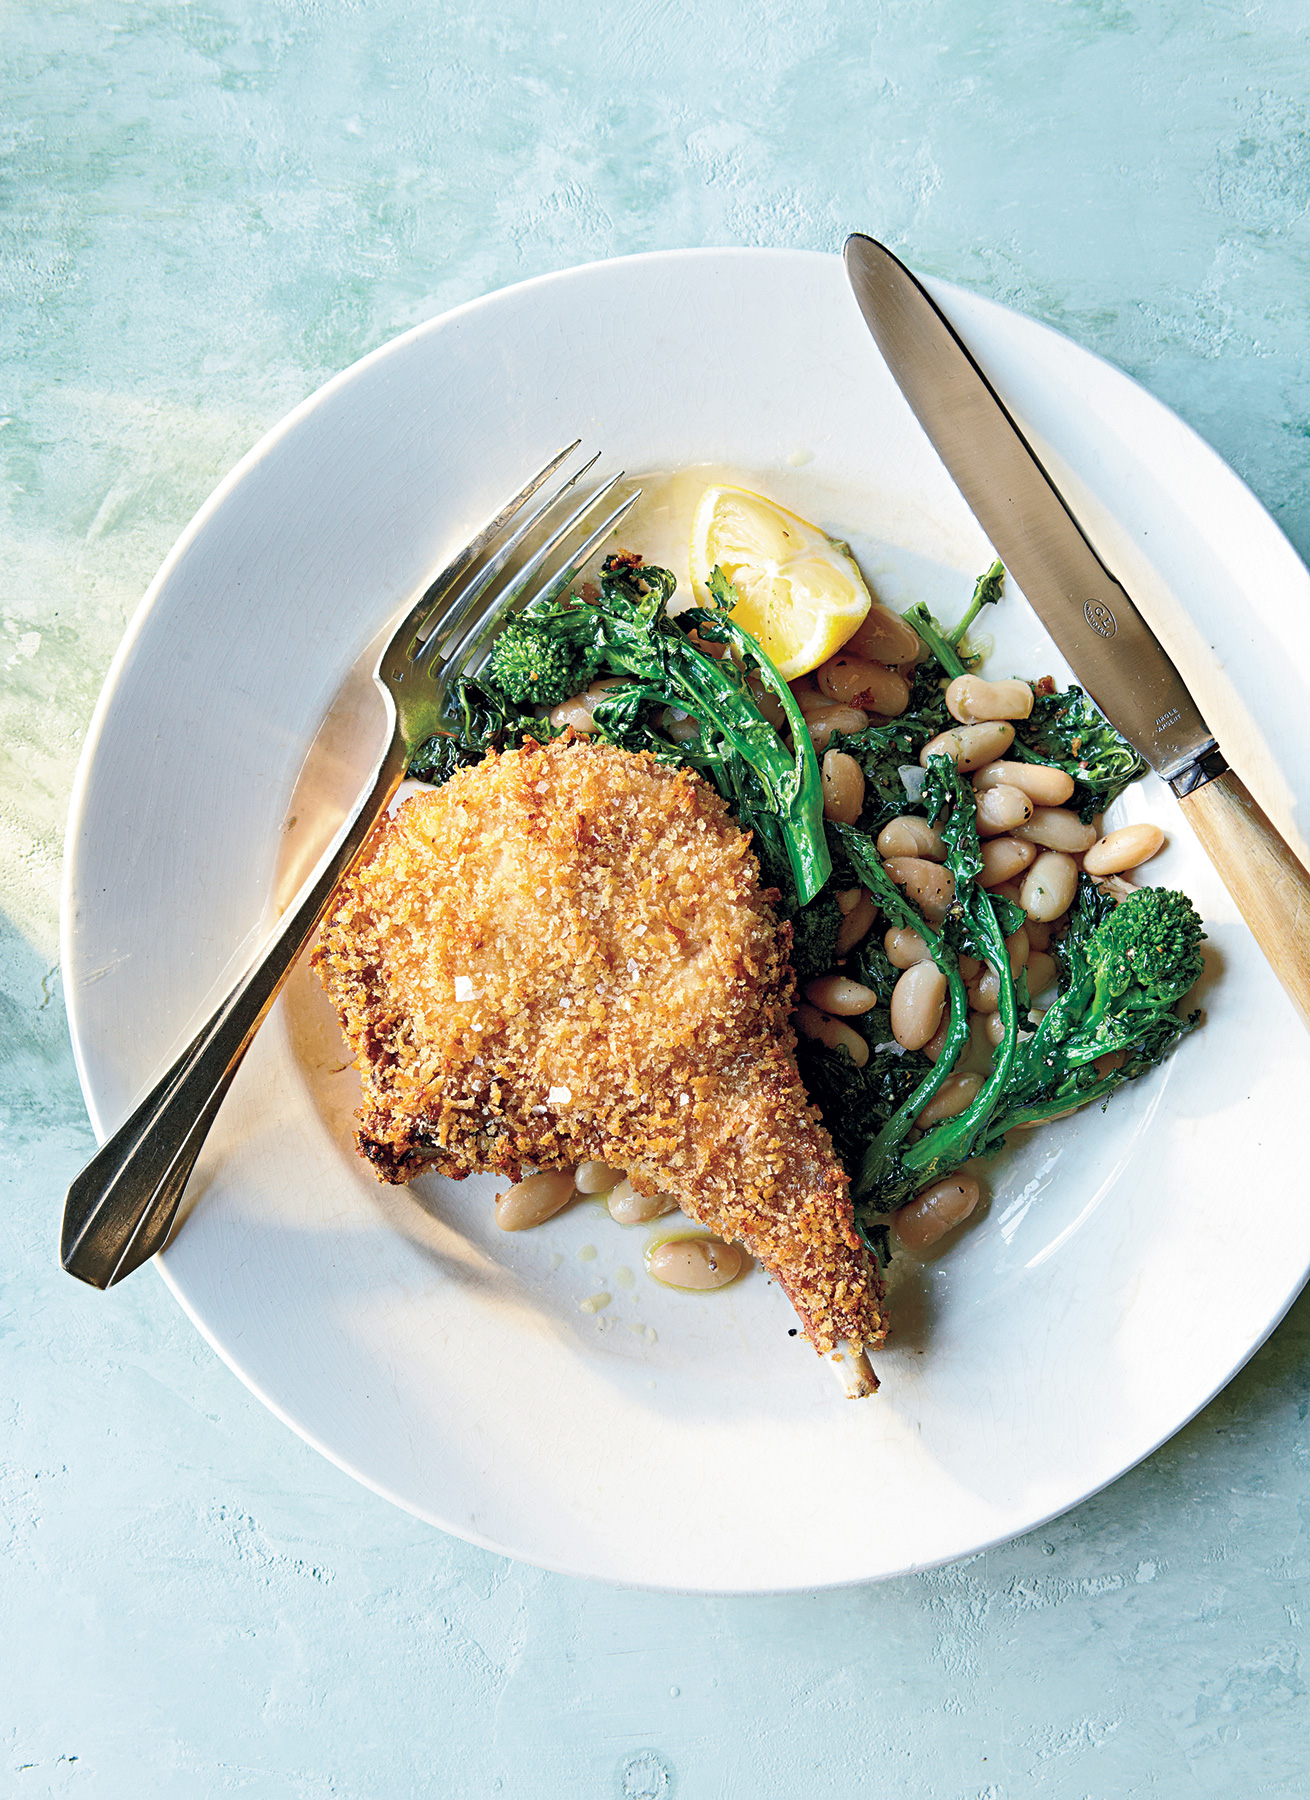 Panko-Crusted Pork Chops with Roasted Broccoli Rabe